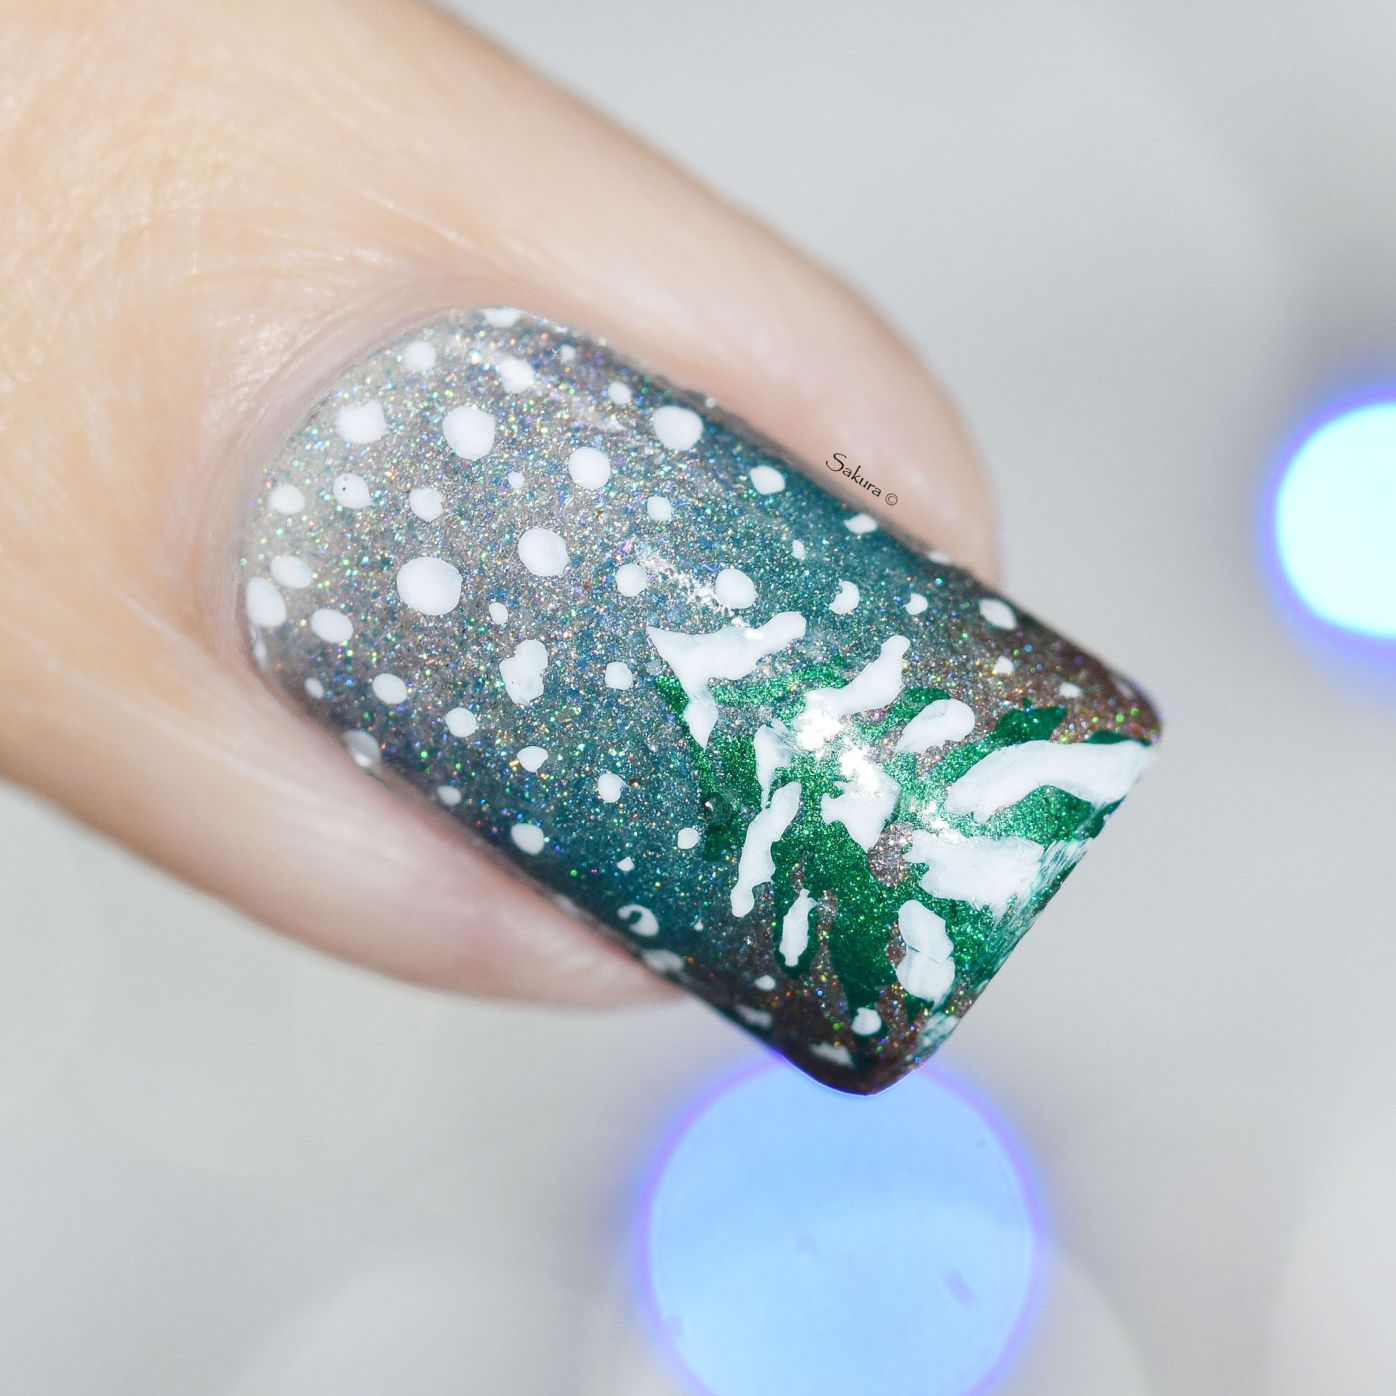 NAIL ART ITS RAINING SNOW 2